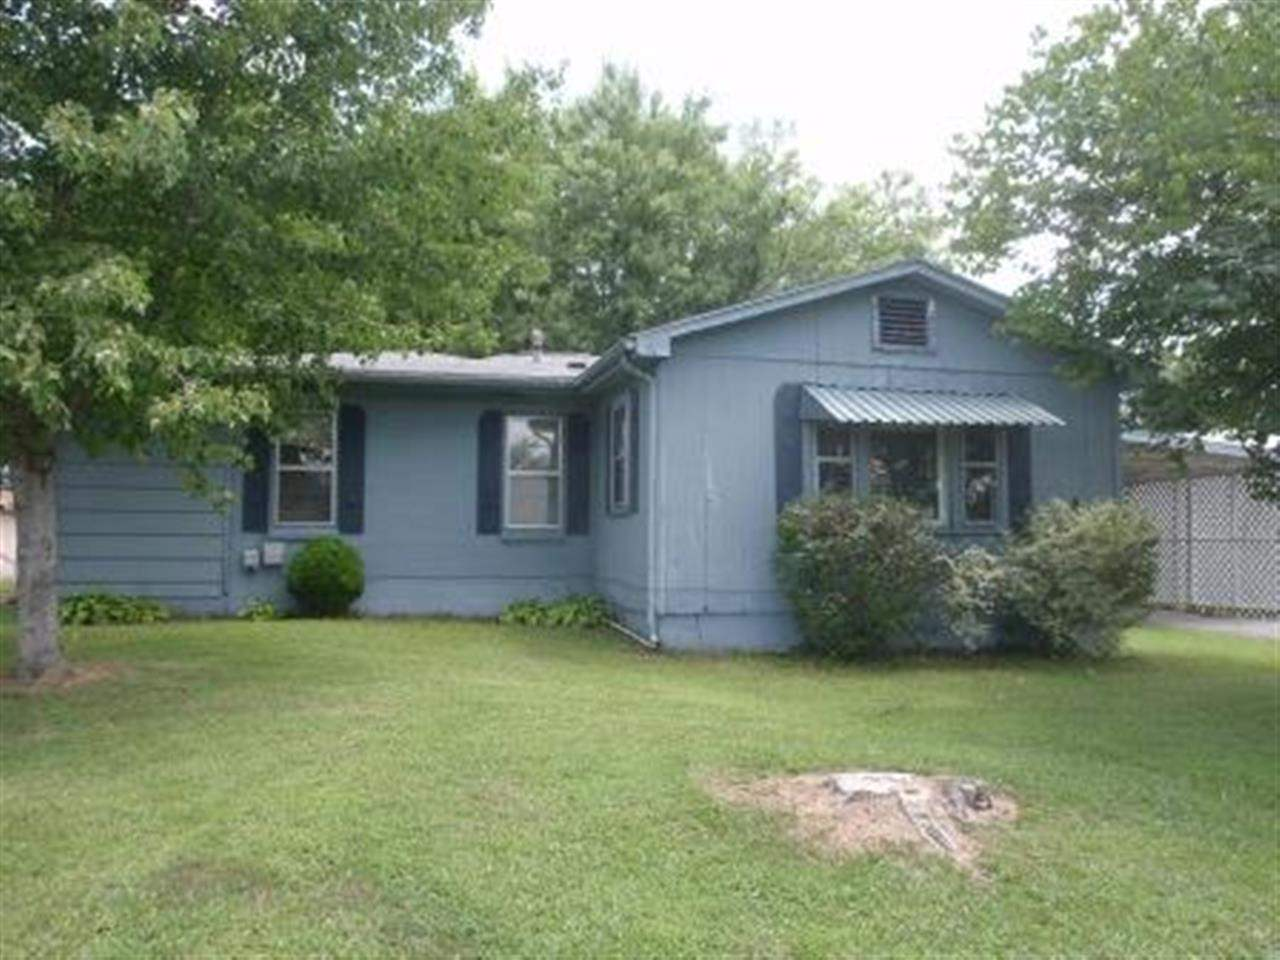 Rental Homes for Rent, ListingId:25122144, location: 587 S Main St Calvert City 42029